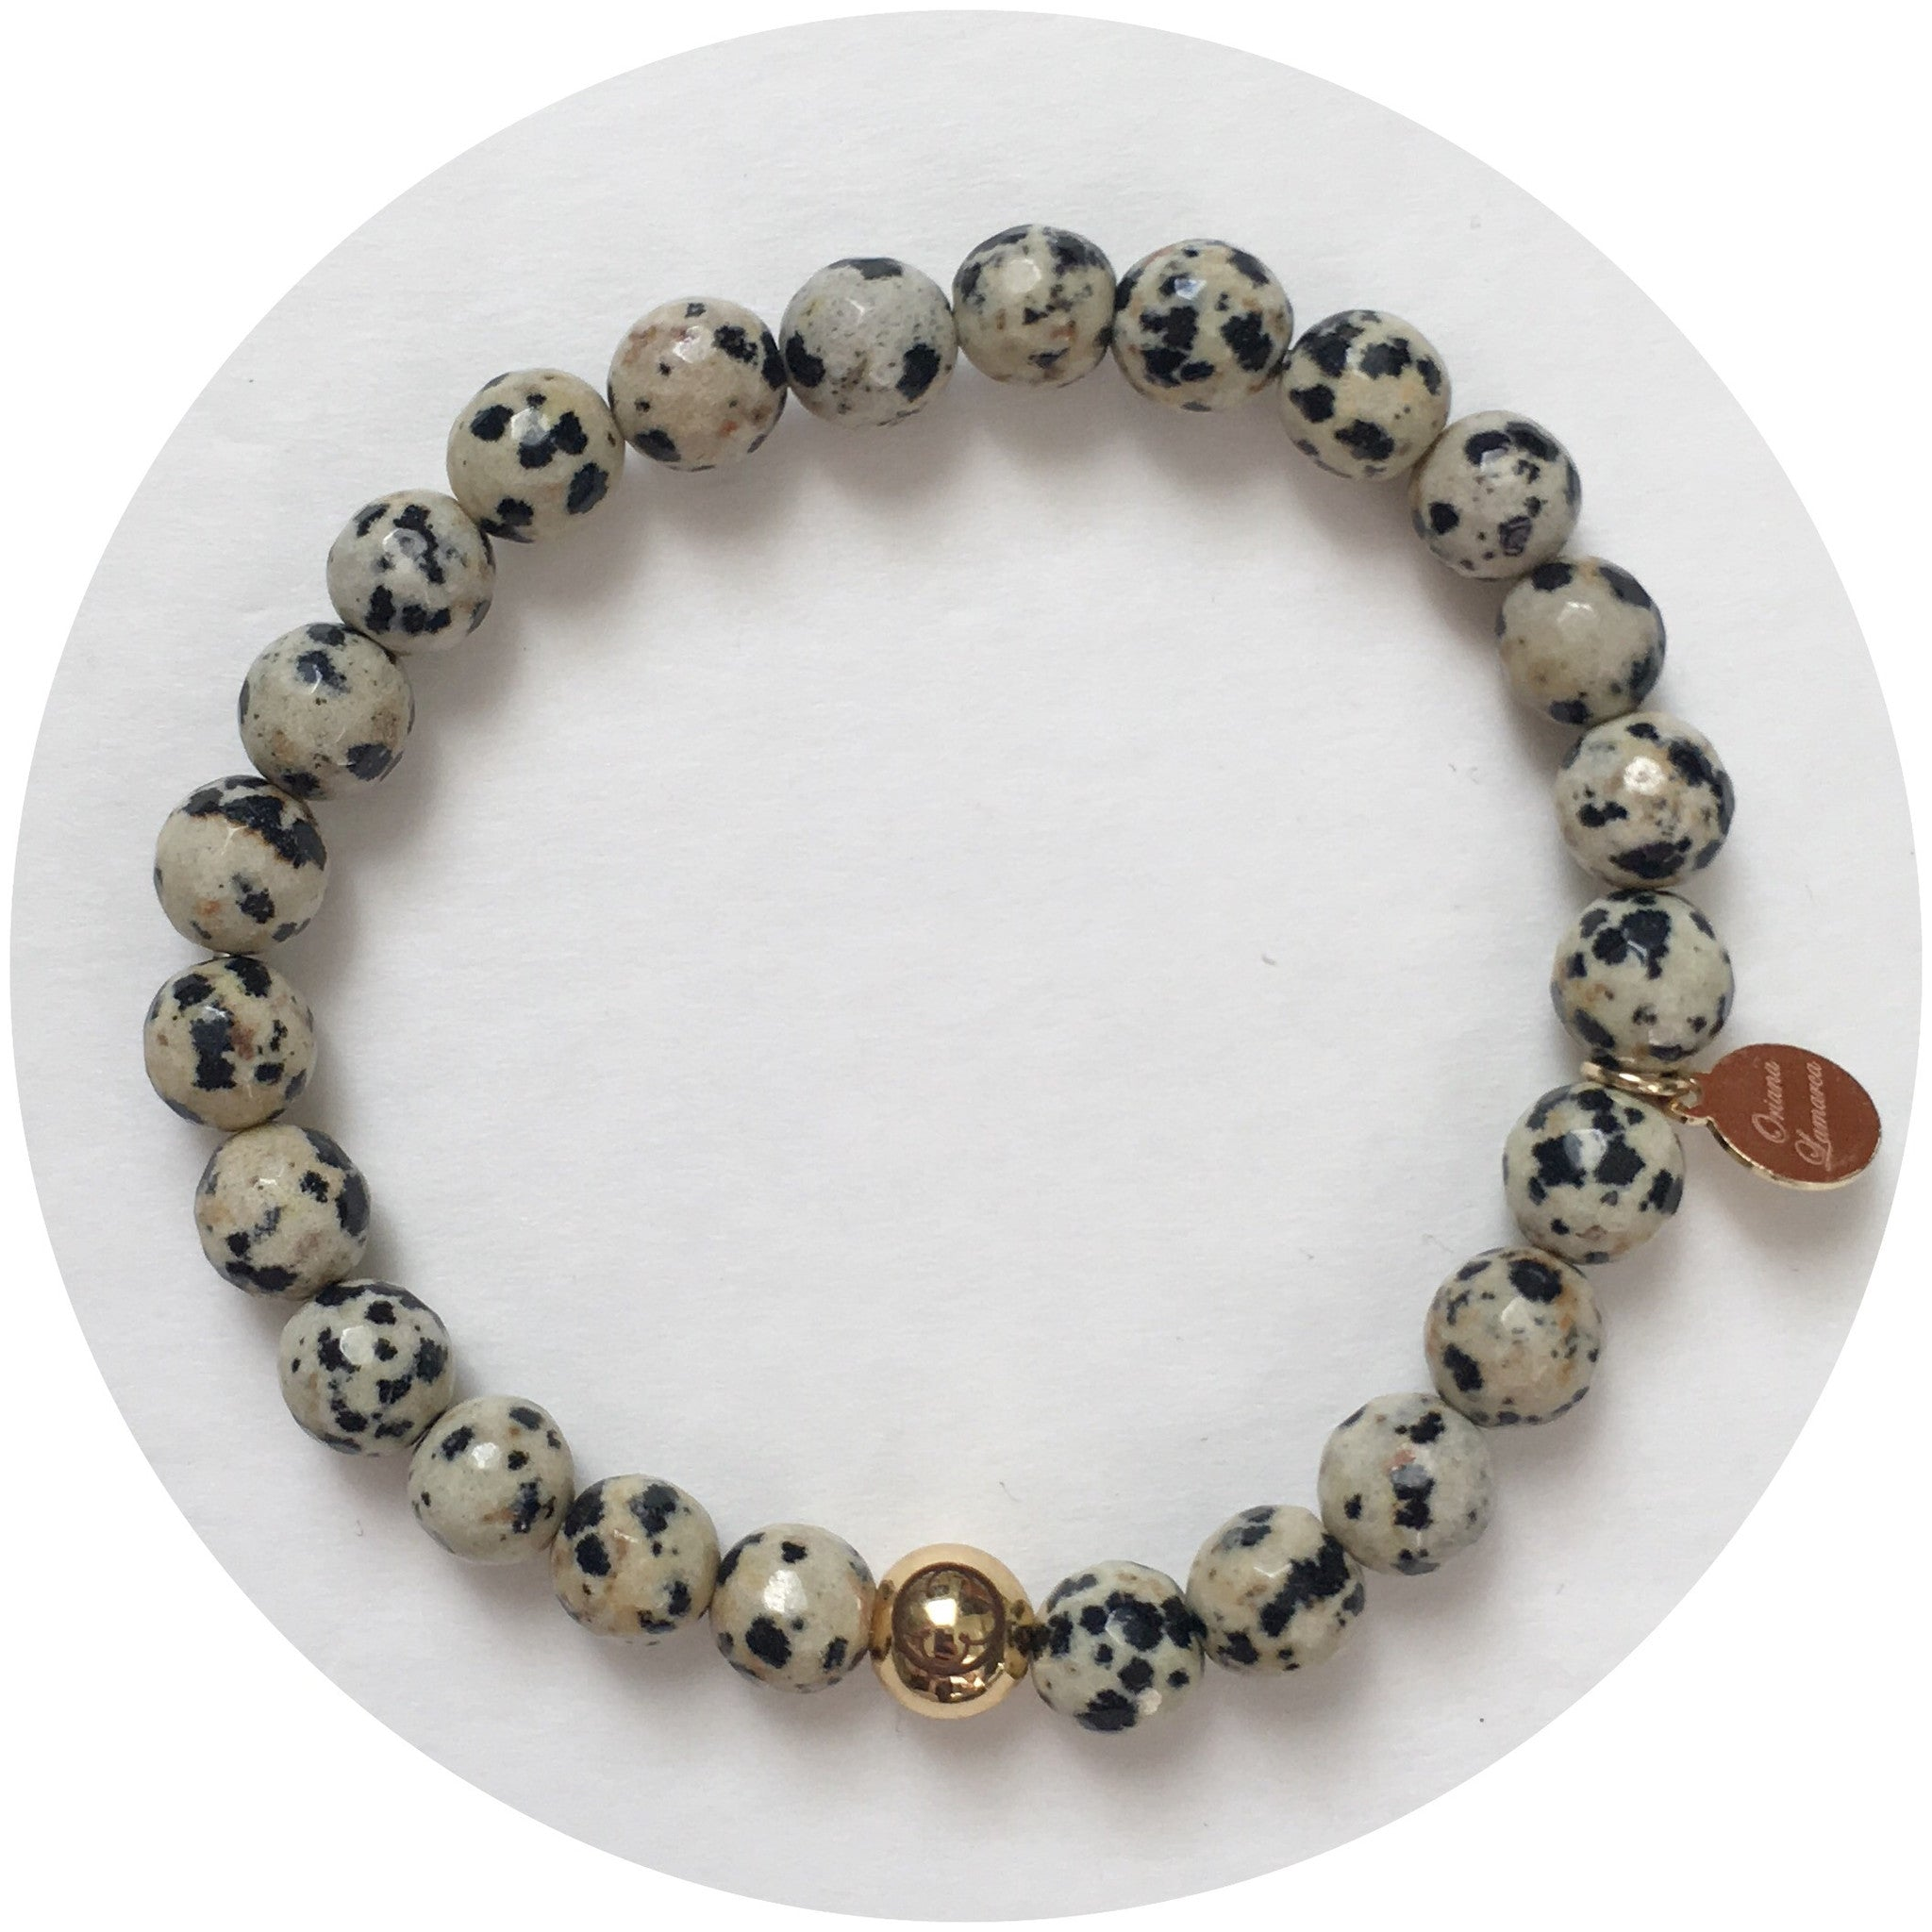 Mens Dalmatian Jasper with Gold Accent - Oriana Lamarca LLC